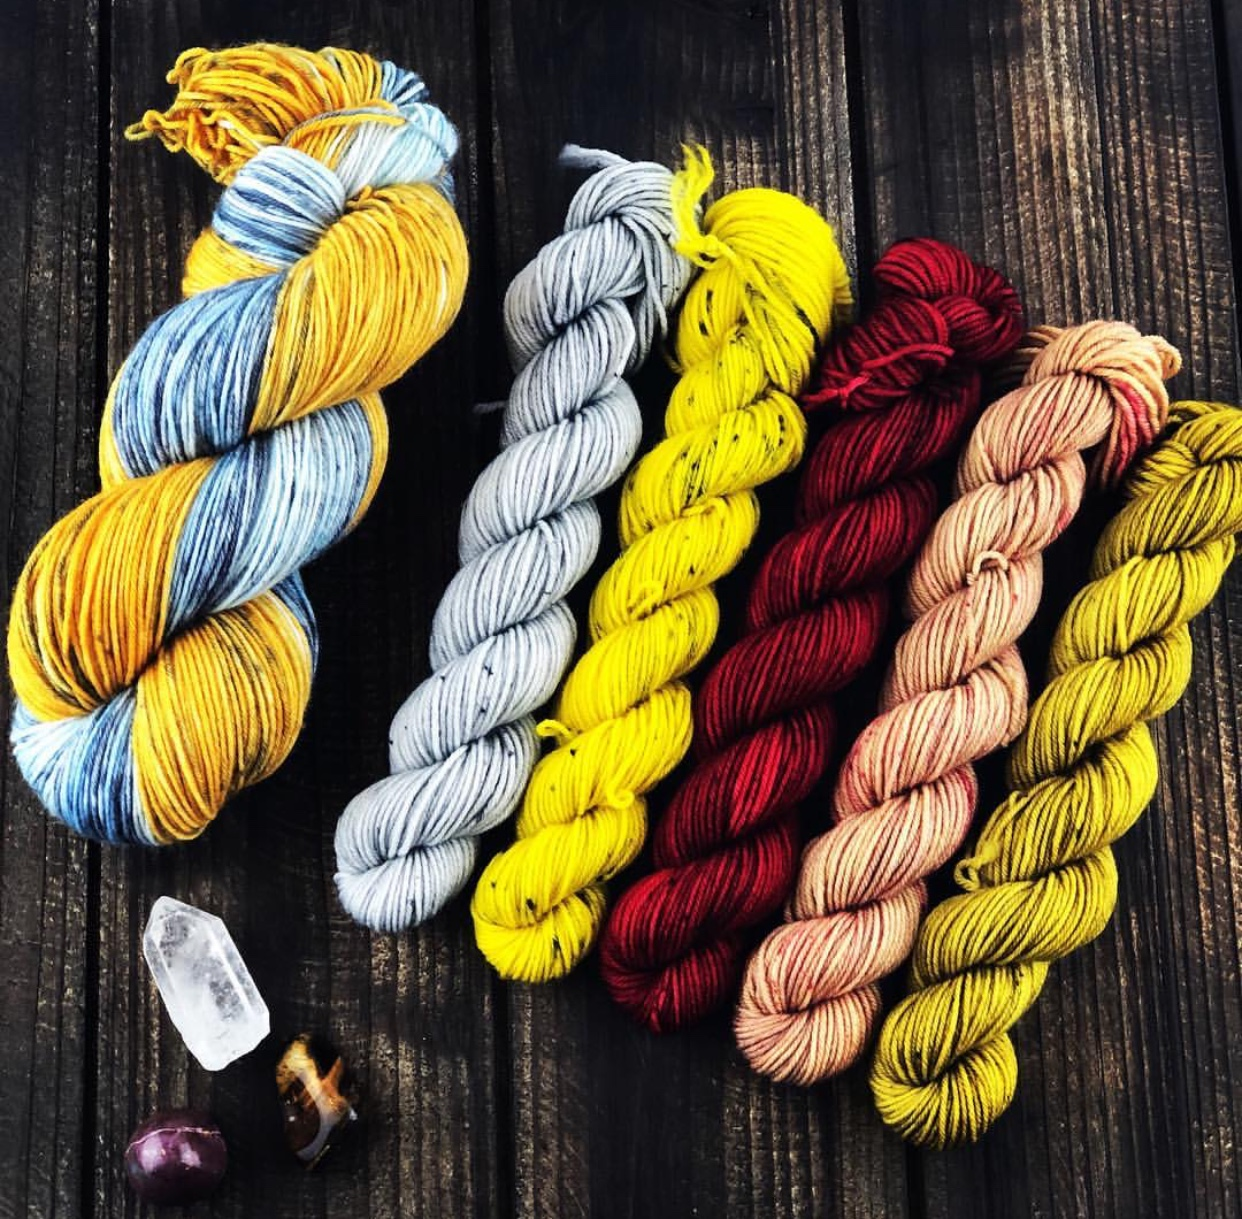 Liz of  High Fiber Artz 's new collaboration Game of Thrones kits with  1sockwonder  and  silentknits  that will come out on 4/14 for the premier of Game of Thrones!